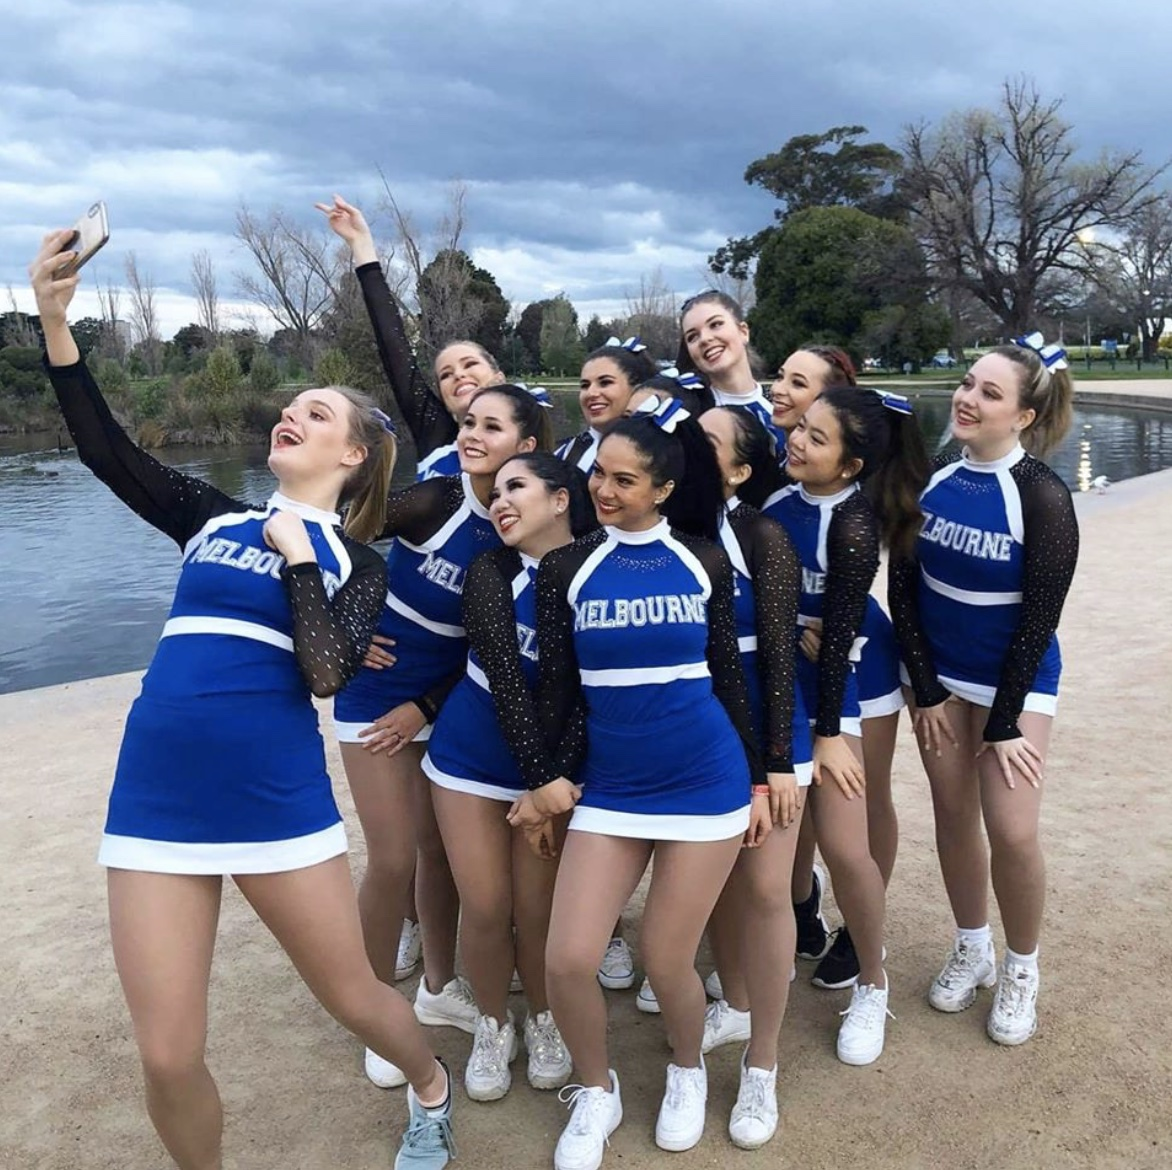 Cheerleading team taking a selfie by a pond